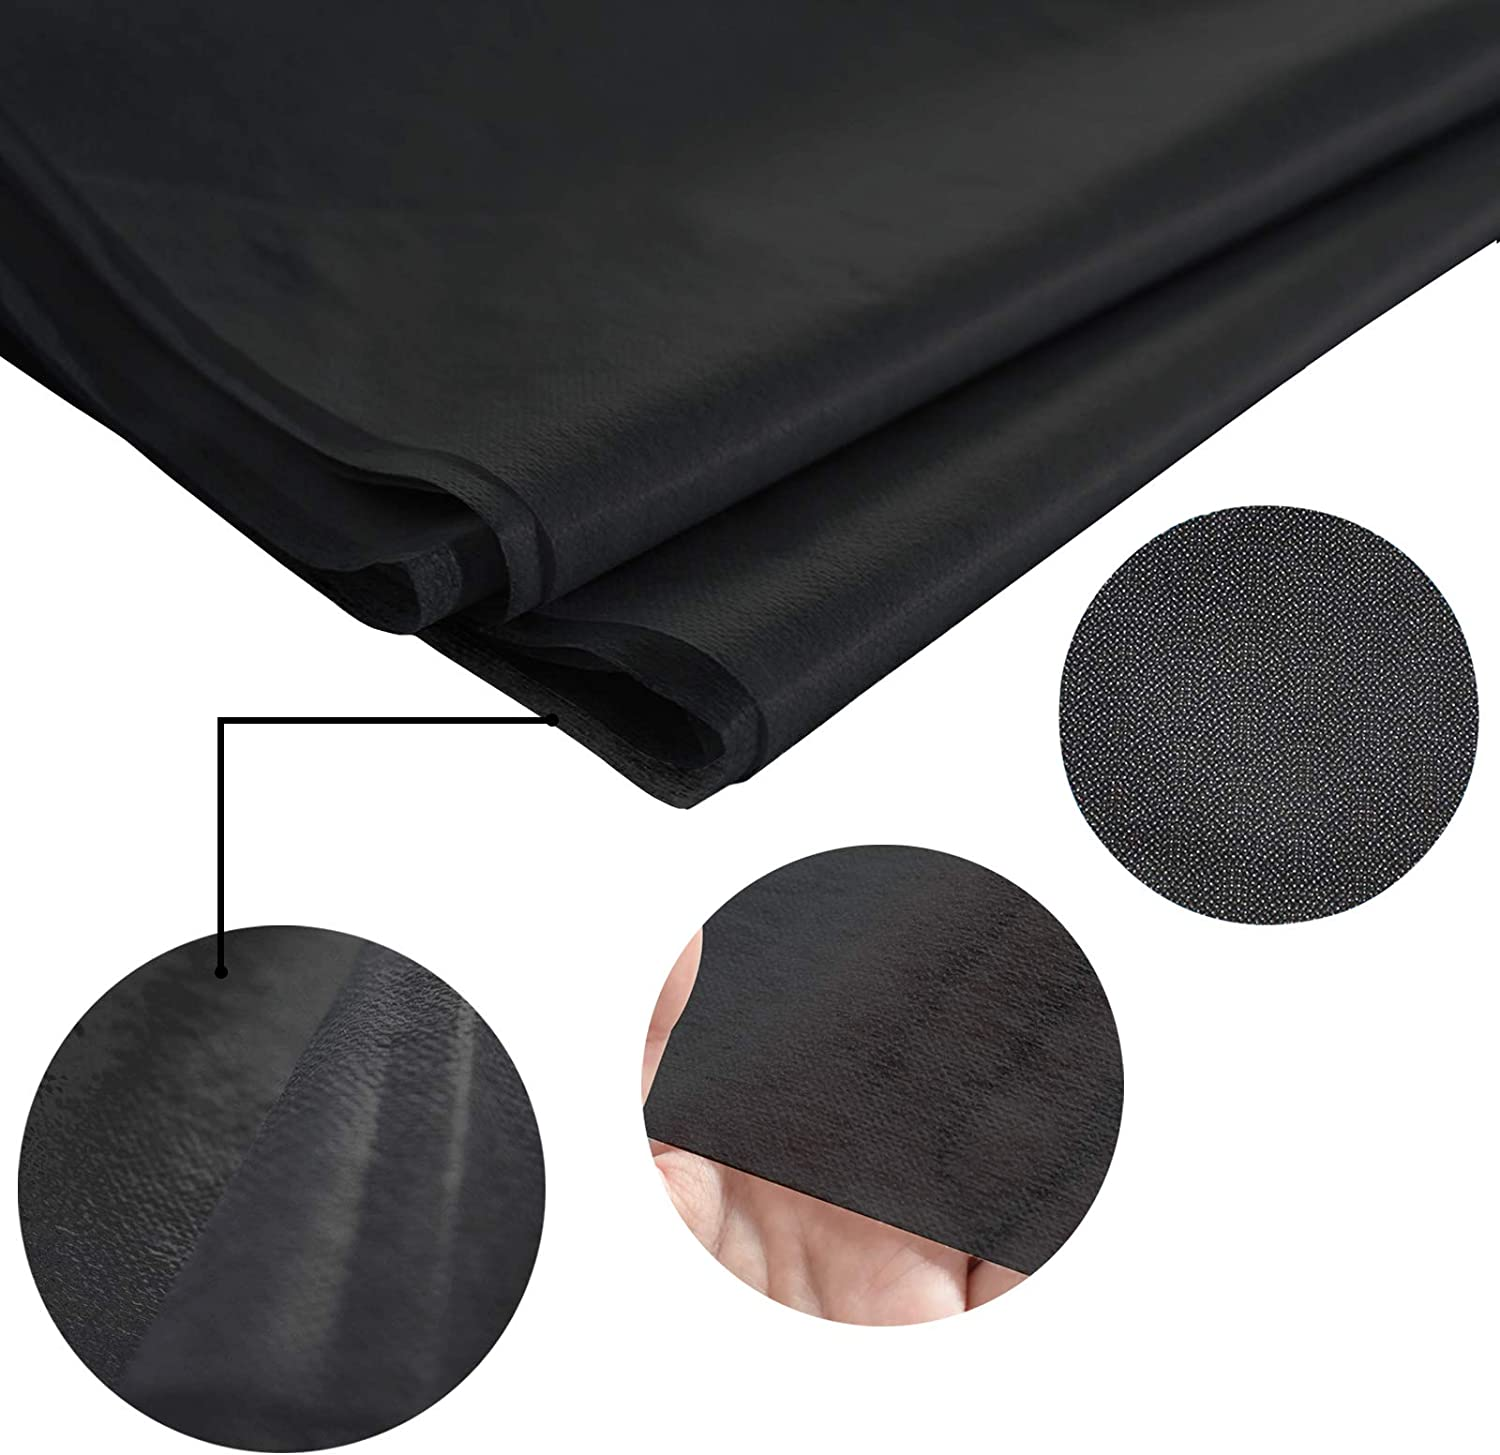 HomKit Non-Woven Lightweight Fusible Interfacing Polyester Interfacing for Sew-in and Interlining Heat Press Transfer Black 1 x 3 Yards Ironing and Arts Crafts